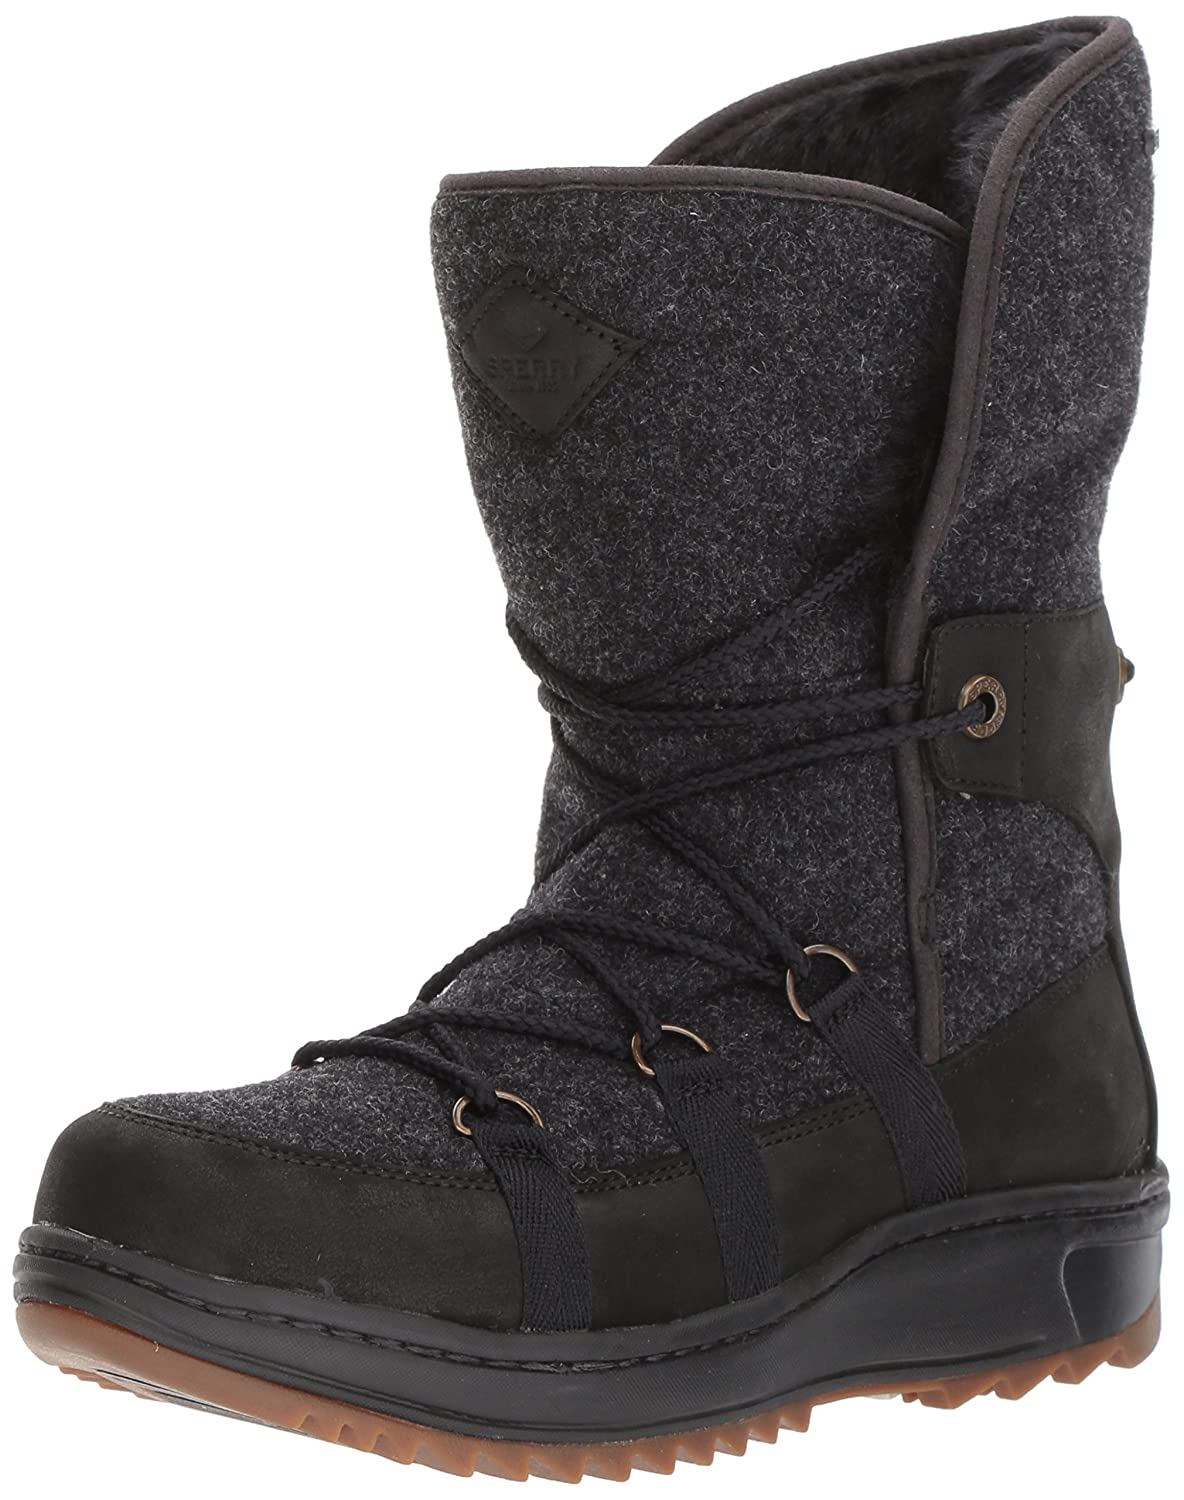 Black Sperry Womens Powder Ice Cap Mid Calf Boots